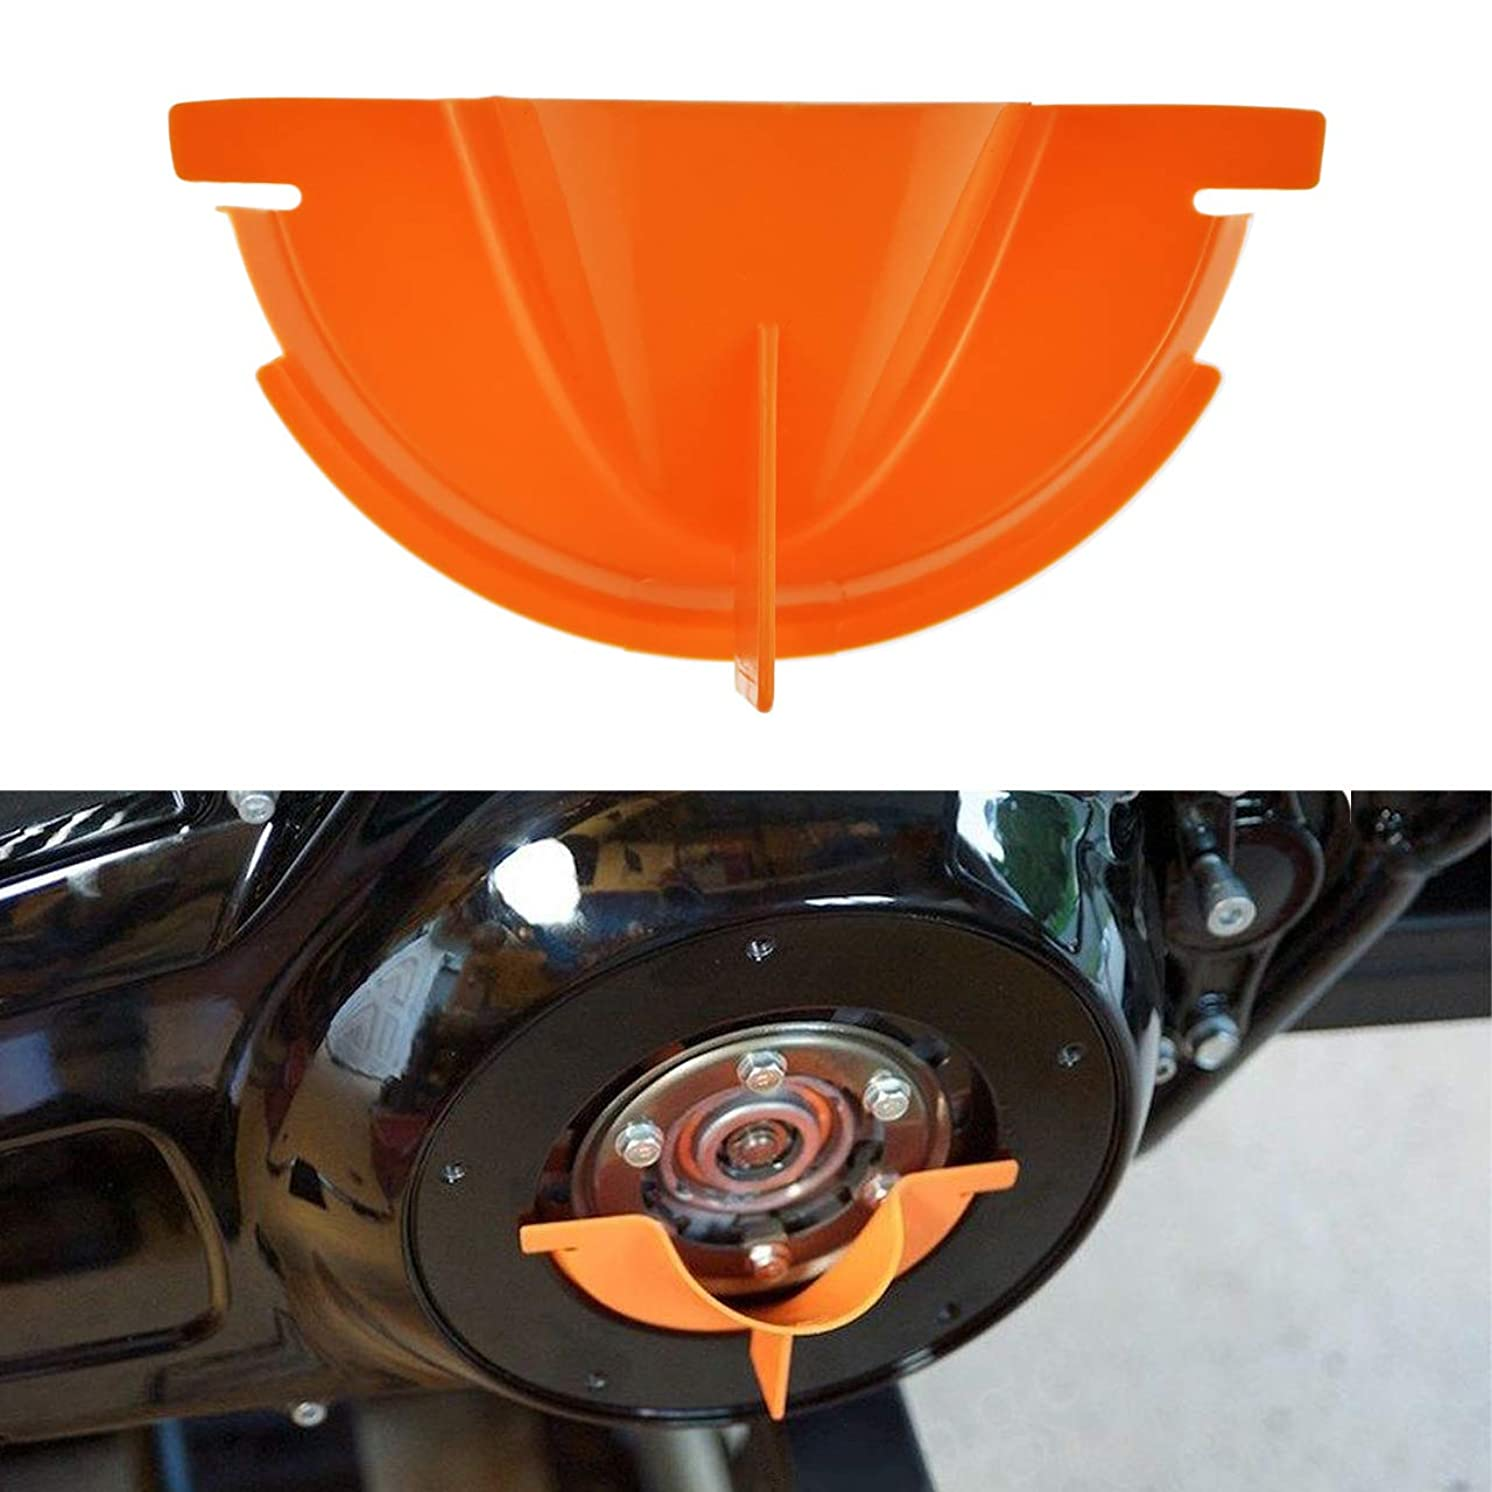 Rebacker Motorcycle Primary Case Plastics Primary Oil Fill Funnel for Harley Touring Trike Models 2006-2017 Dyna 2007-2018 Softail,Orange